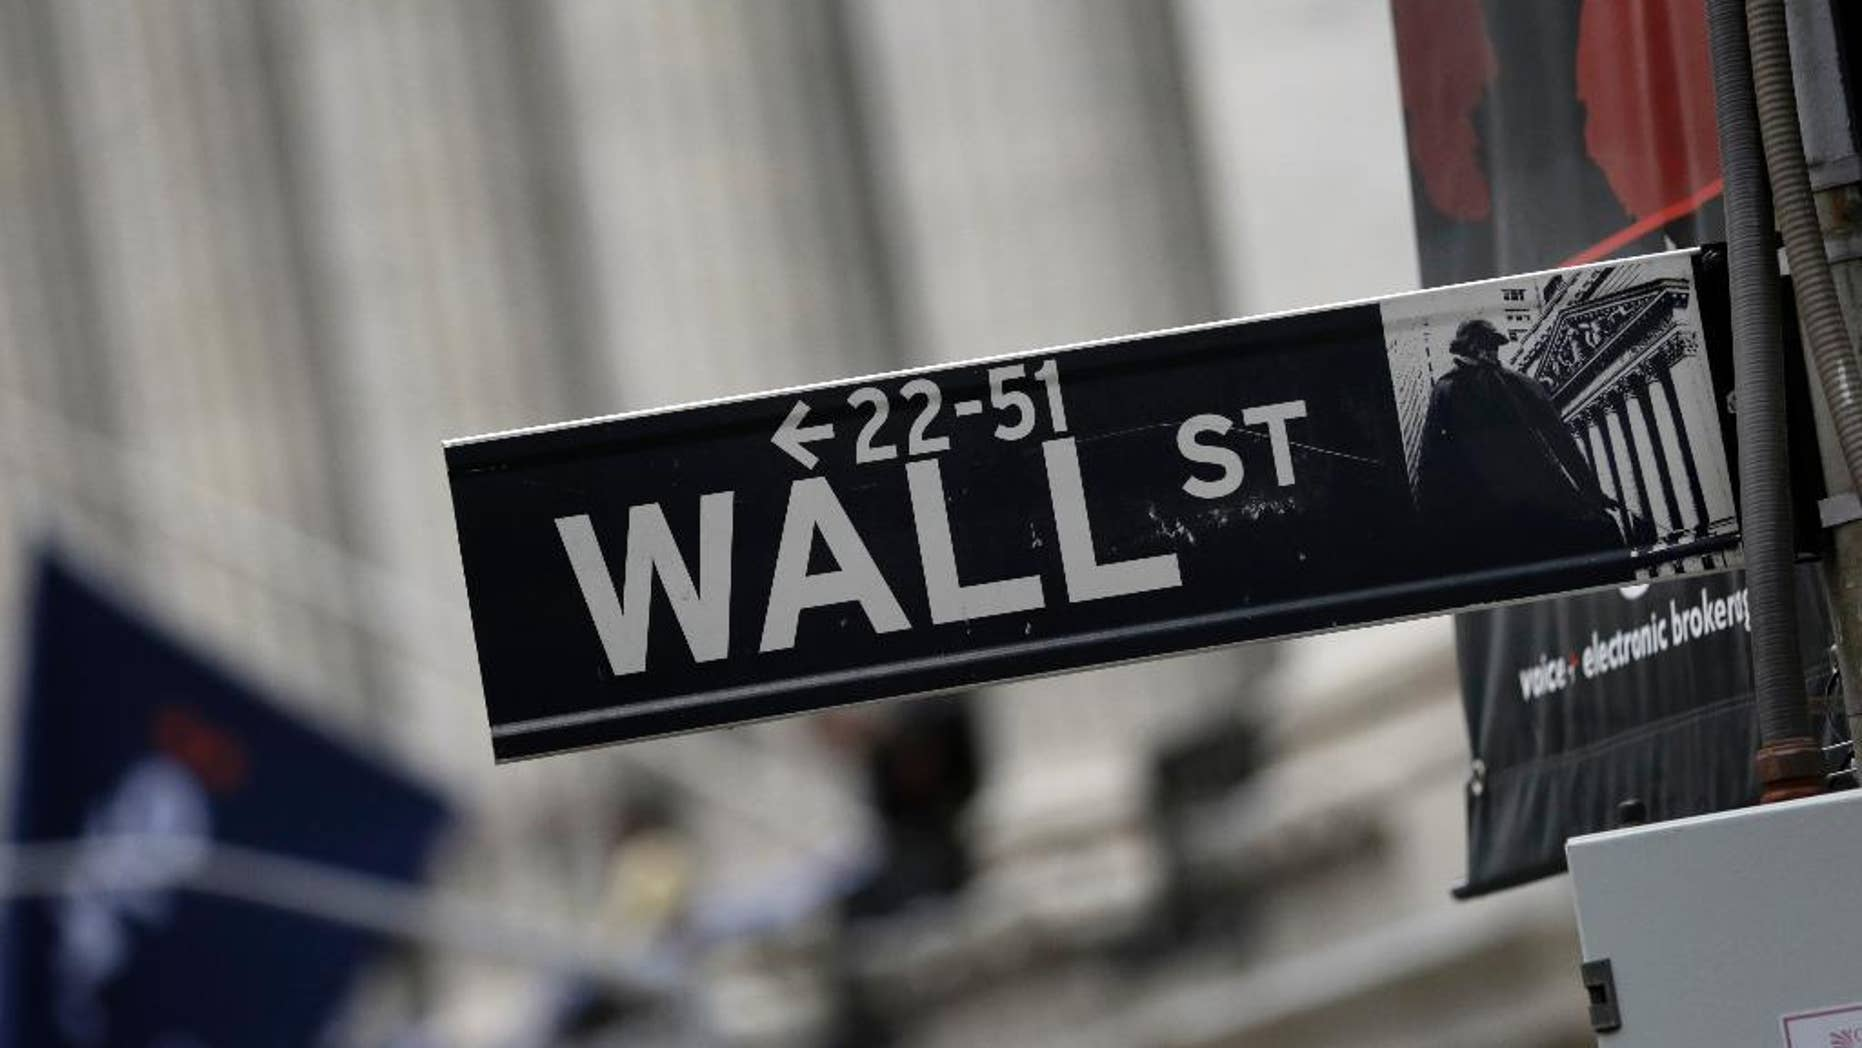 FILE - This Oct. 2, 2014 photo shows a Wall Street sign adjacent to the New York Stock Exchange, in New York.   U.S. stocks are wavering in early trading more big companies turn in earnings reports. Markets in Asia surged on optimism over recent reforms in China, on Tuesday, April 21, 2015. (AP Photo/Richard Drew)